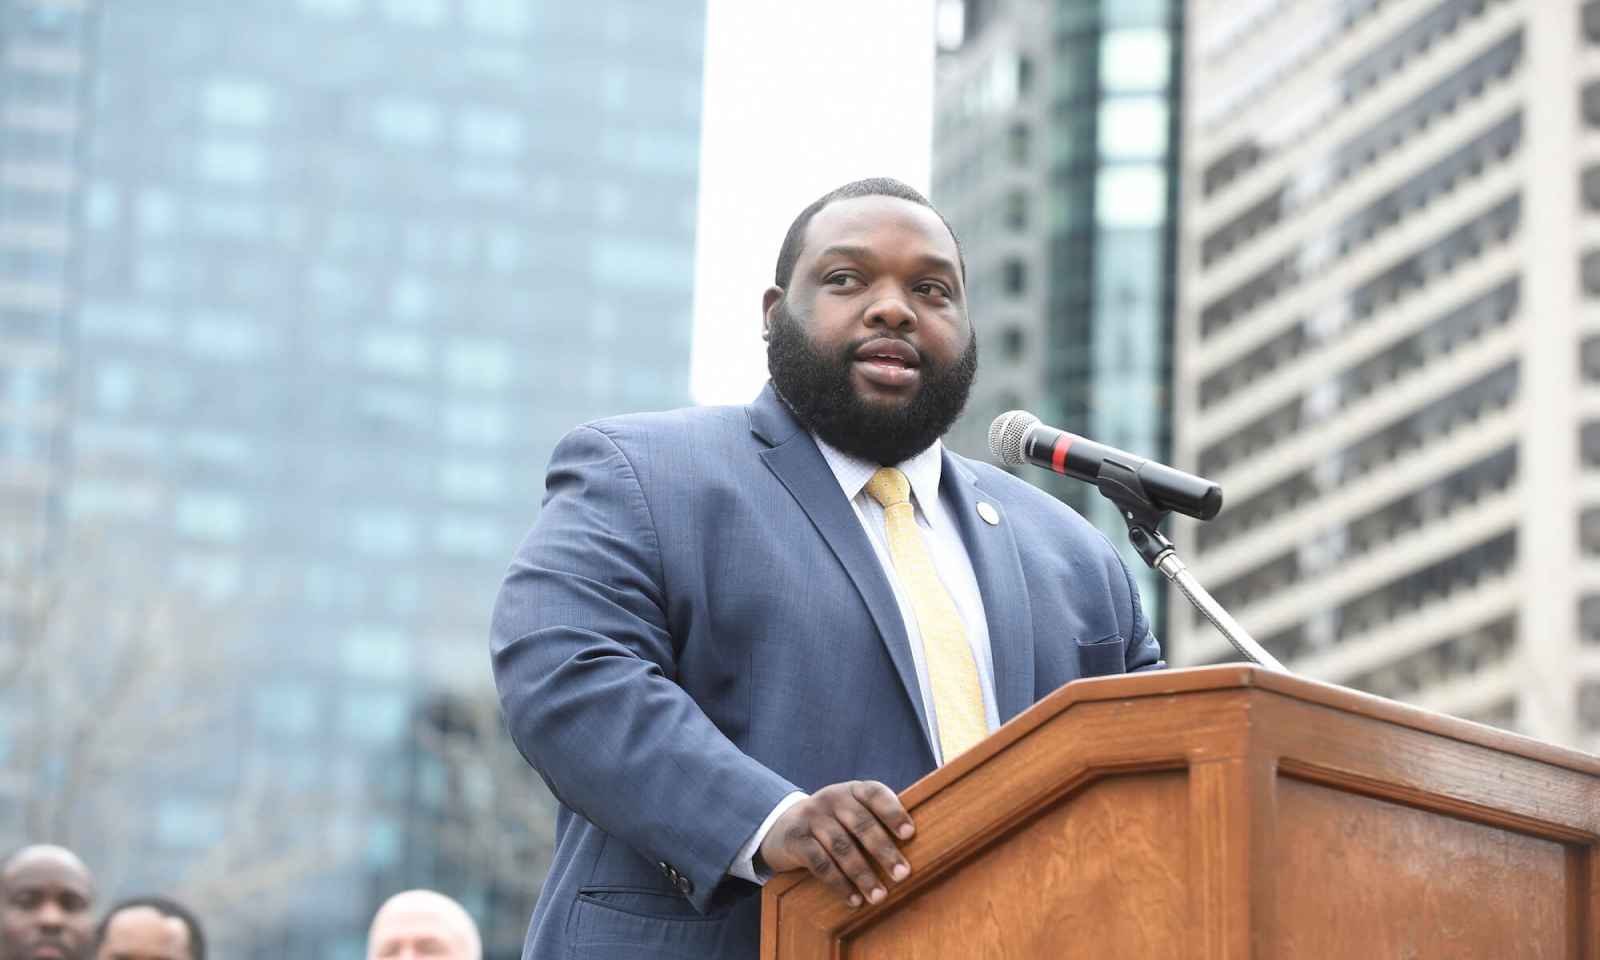 Rep. Jordan A. Harris speaking at a press conference